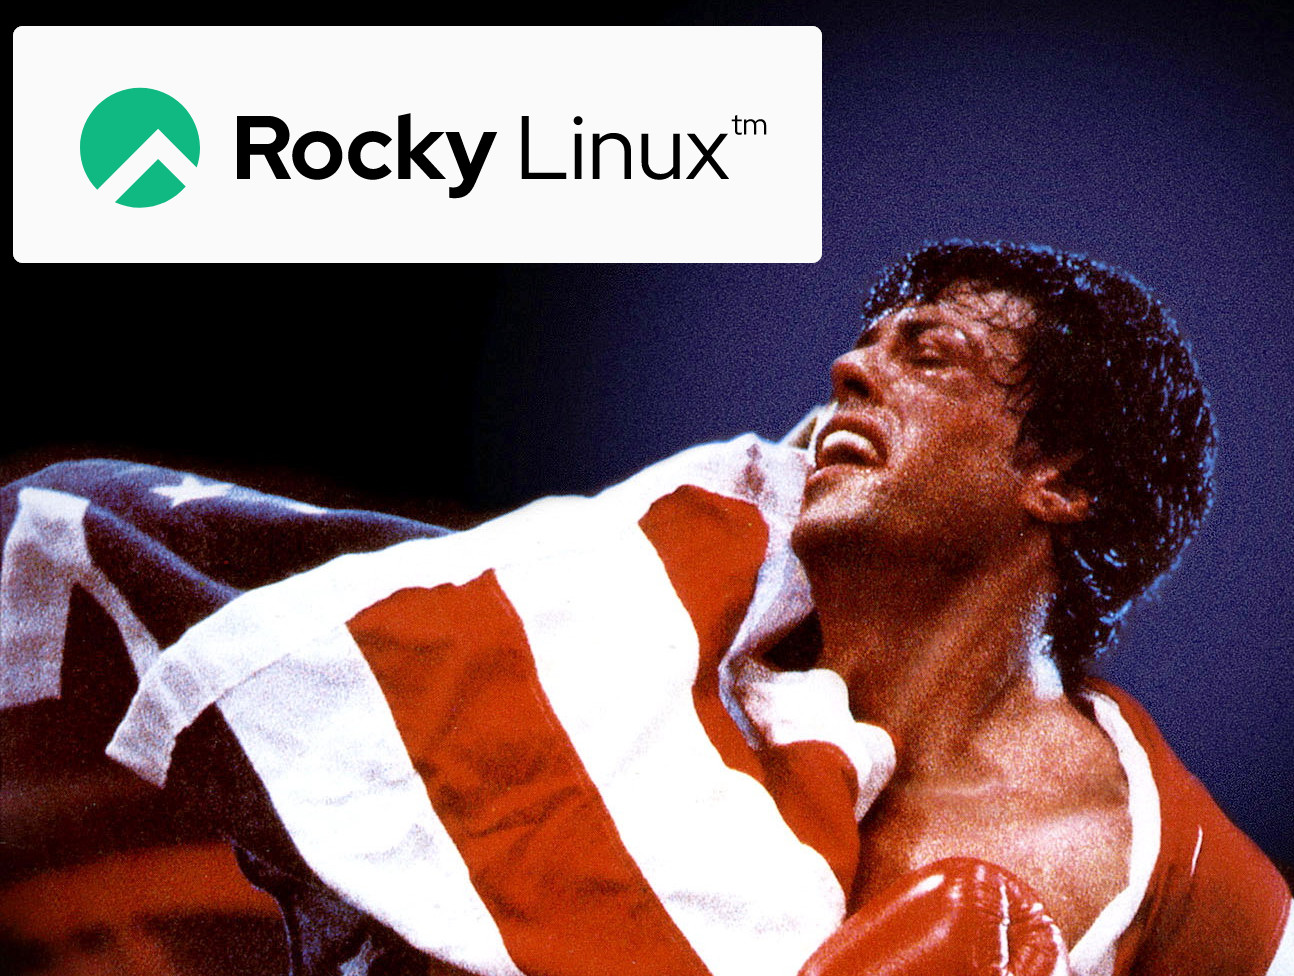 Successor to CentOS: GNU Rocky Linux 8.4 – community driven enterprise Open Source OS – for x86 and ARM – a test drive (as VirtualBox VM) with screenshots